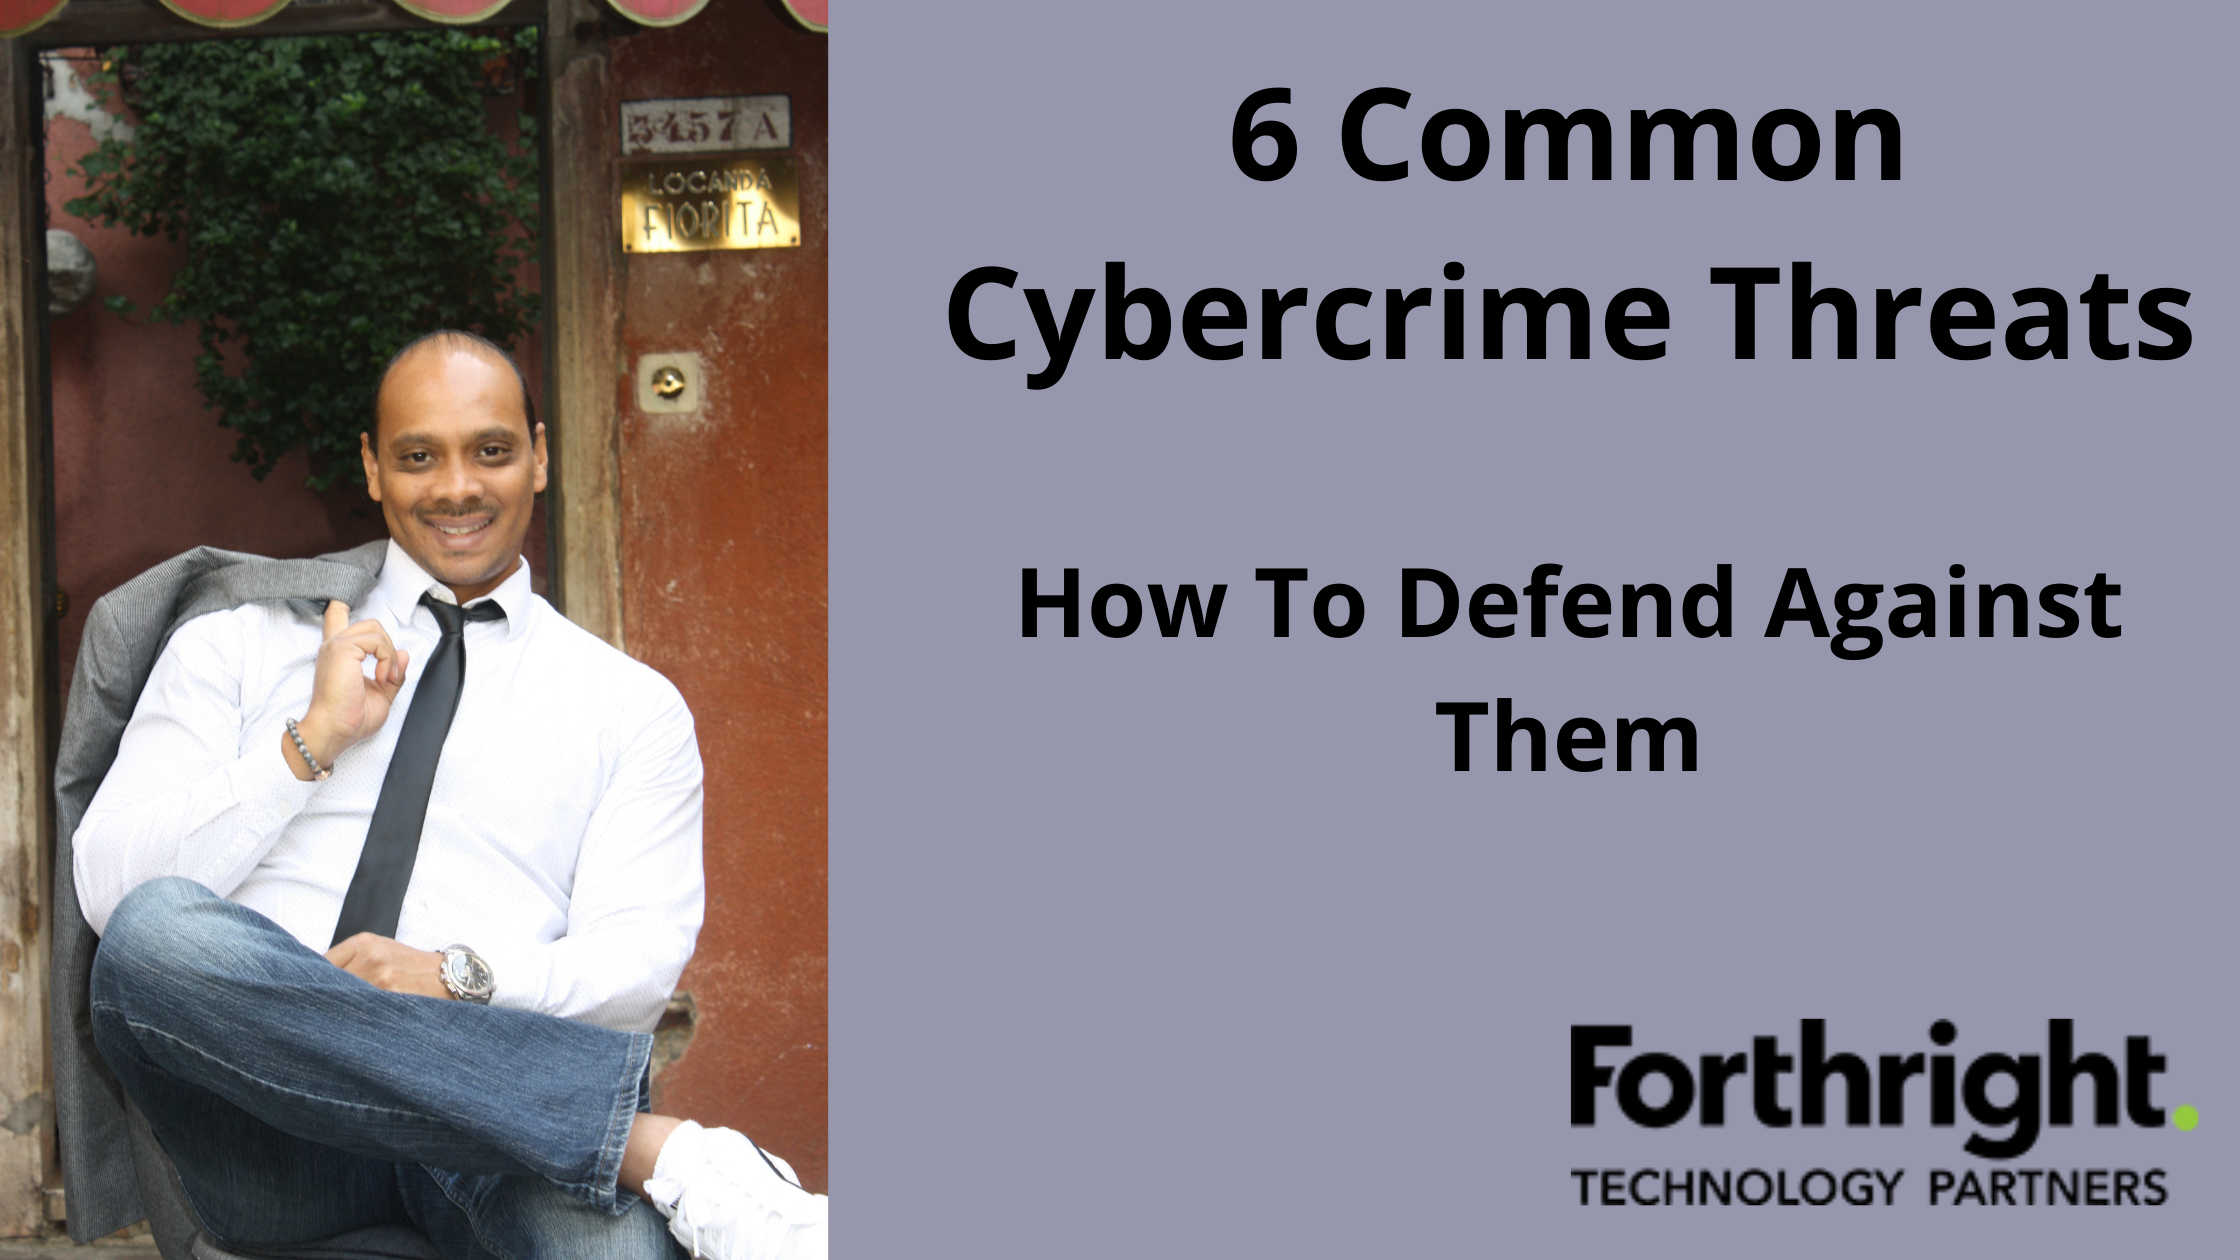 6 Common Cybercrime Threats (And How To Defend Against Them)